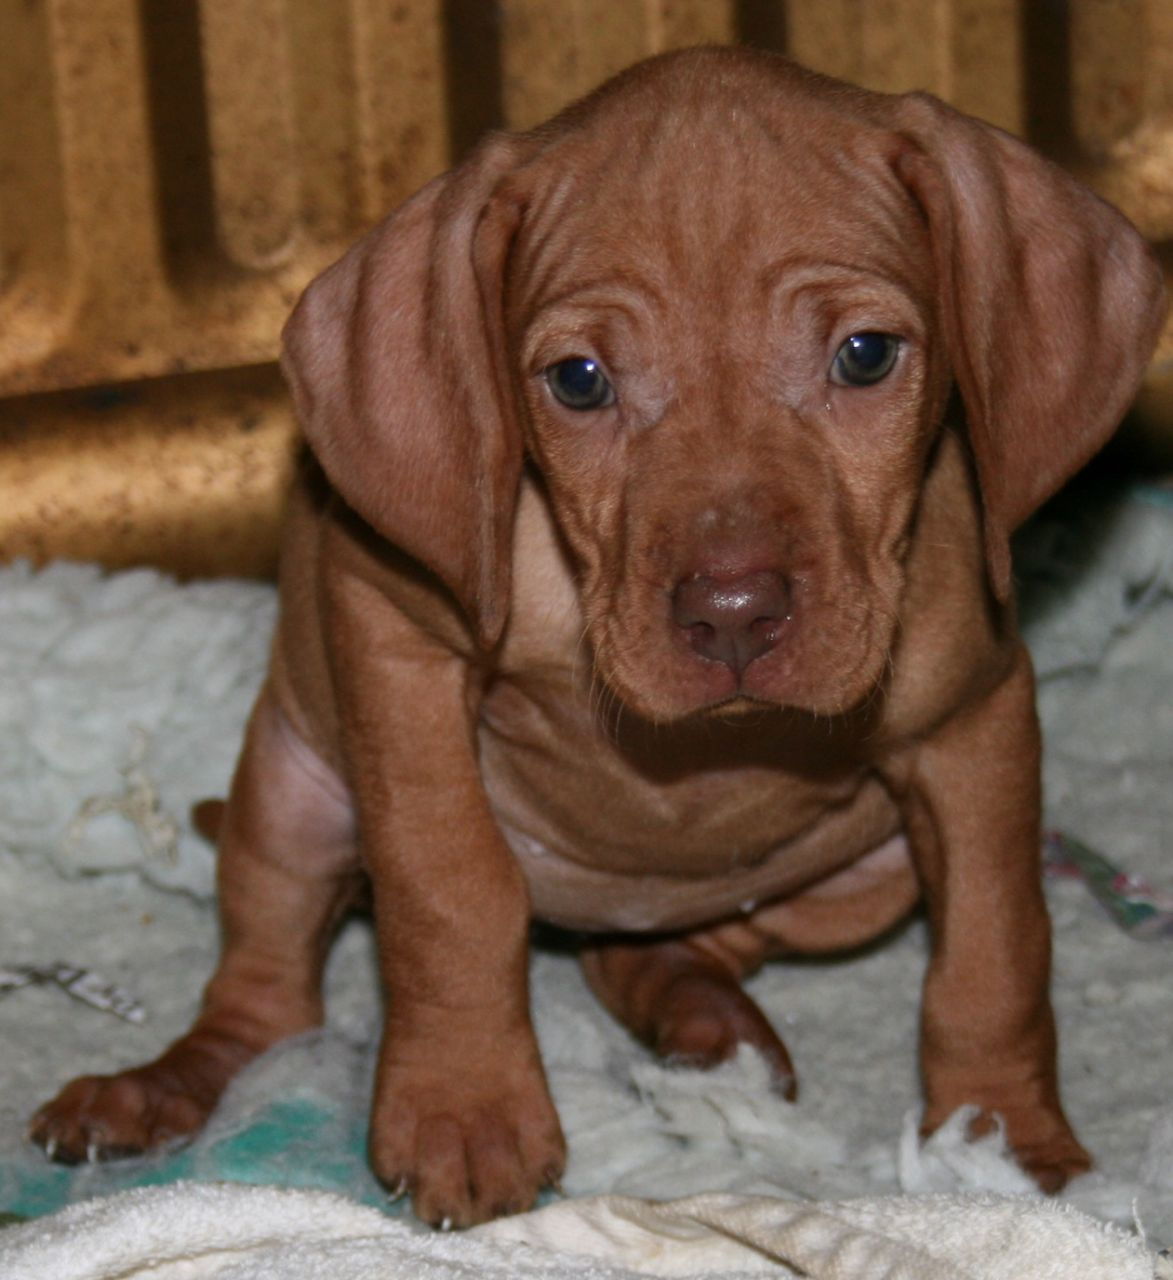 Hungarian Vizsla Puppies For Sale Vizsla puppies, Vizsla